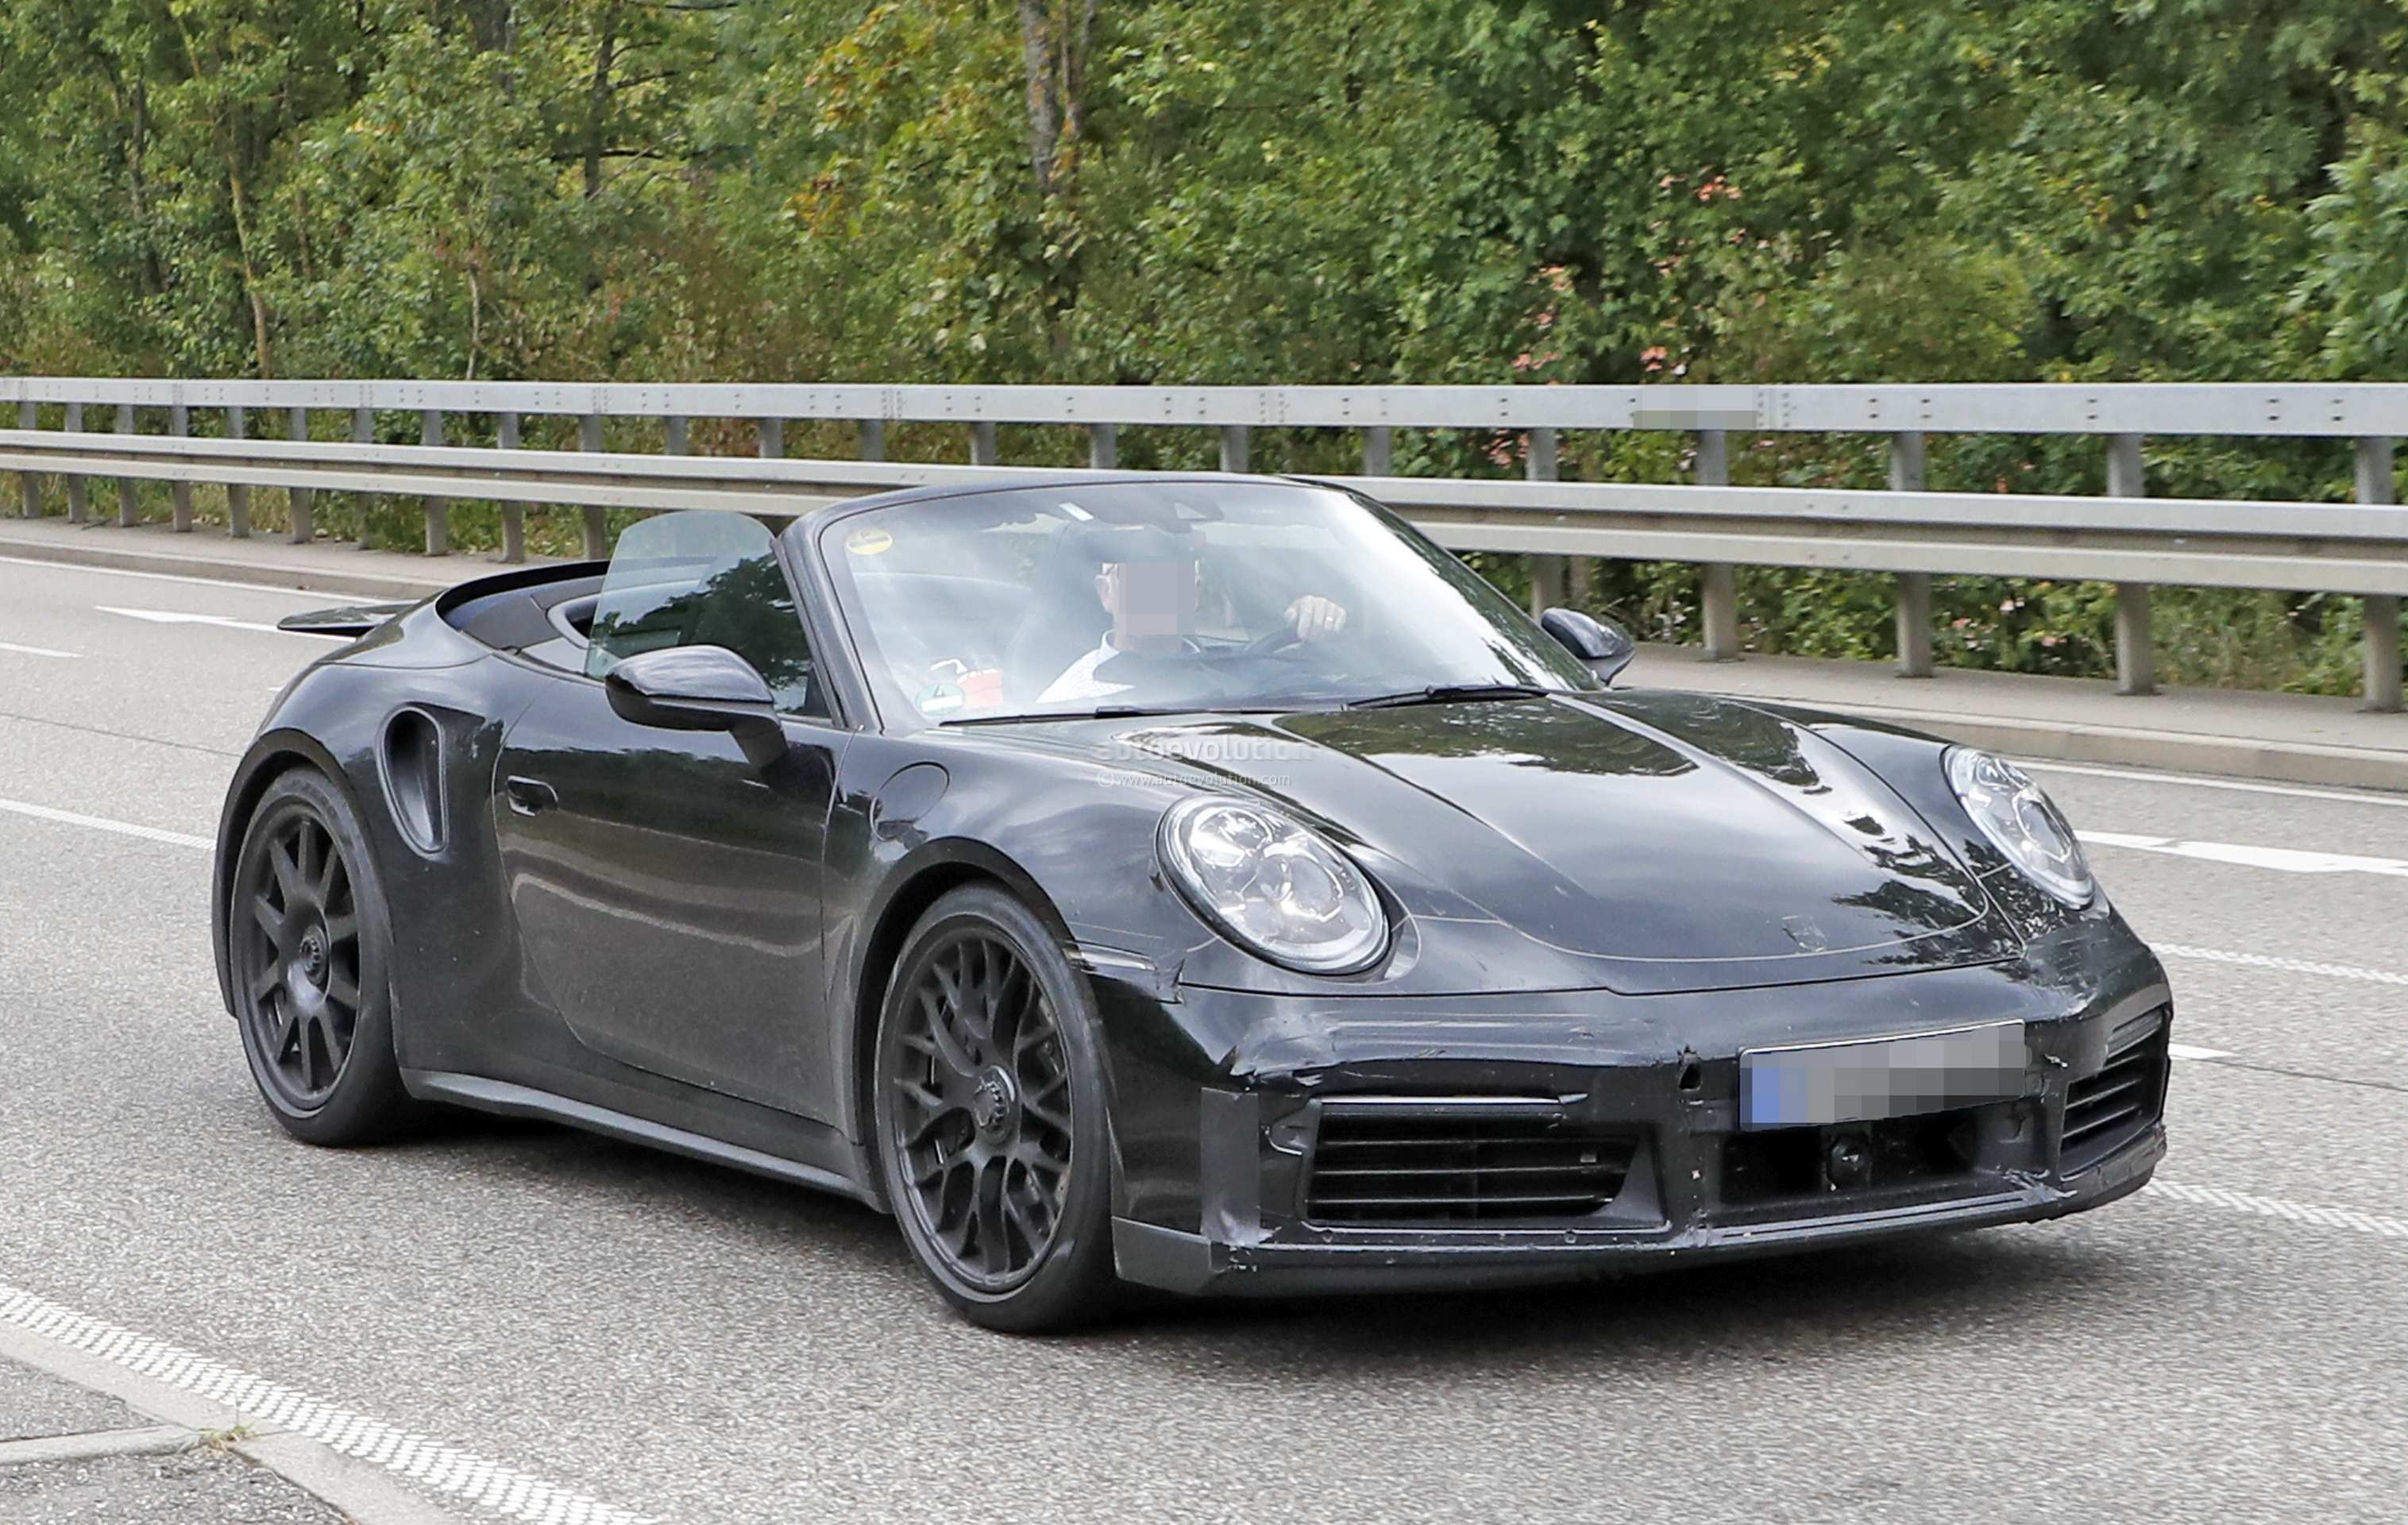 72 The 2020 Porsche 911 Carrera Specs for 2020 Porsche 911 Carrera